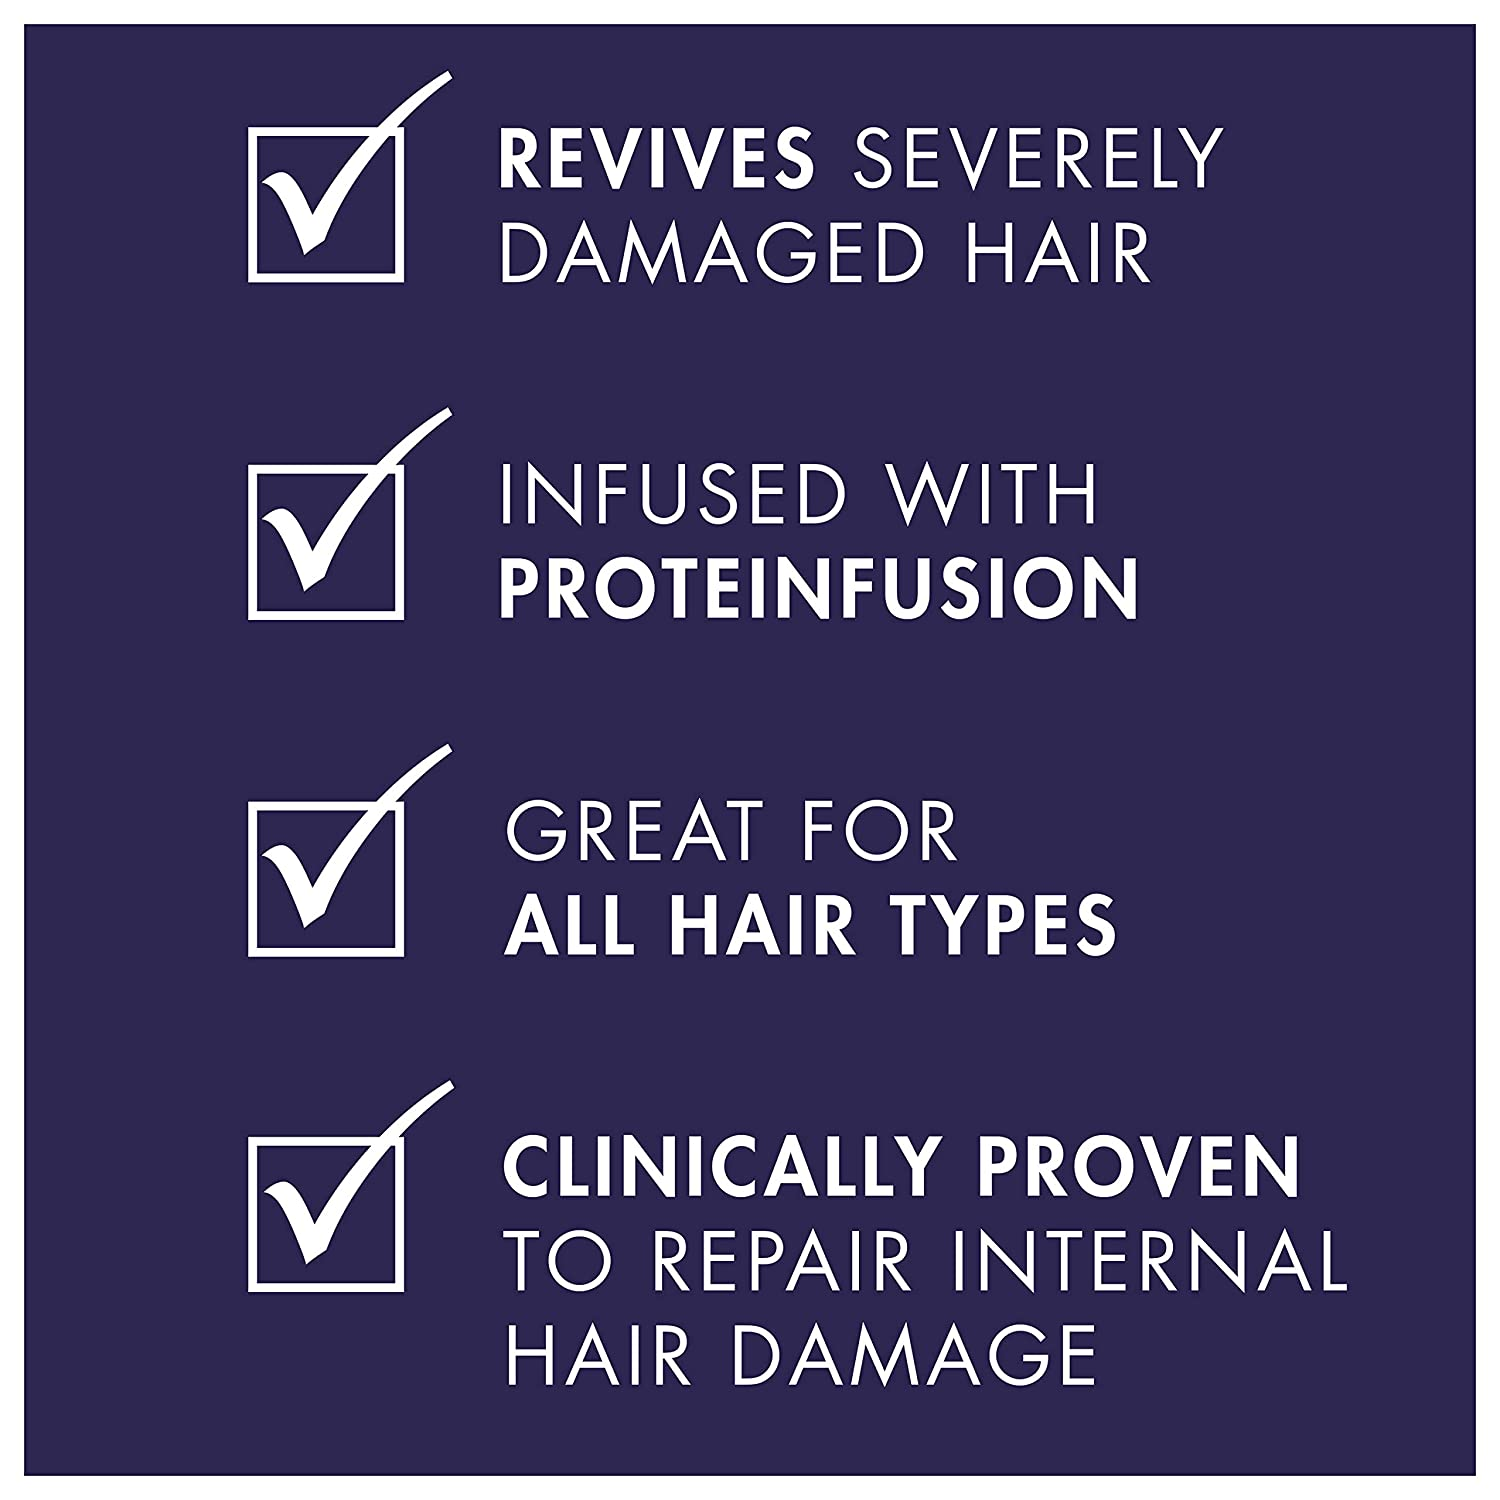 Nexxus Keraphix Shampoo for Damaged Hair With ProteinFusion Keratin Protein, Black Rice, Silicone-Free 33.8 oz : Beauty